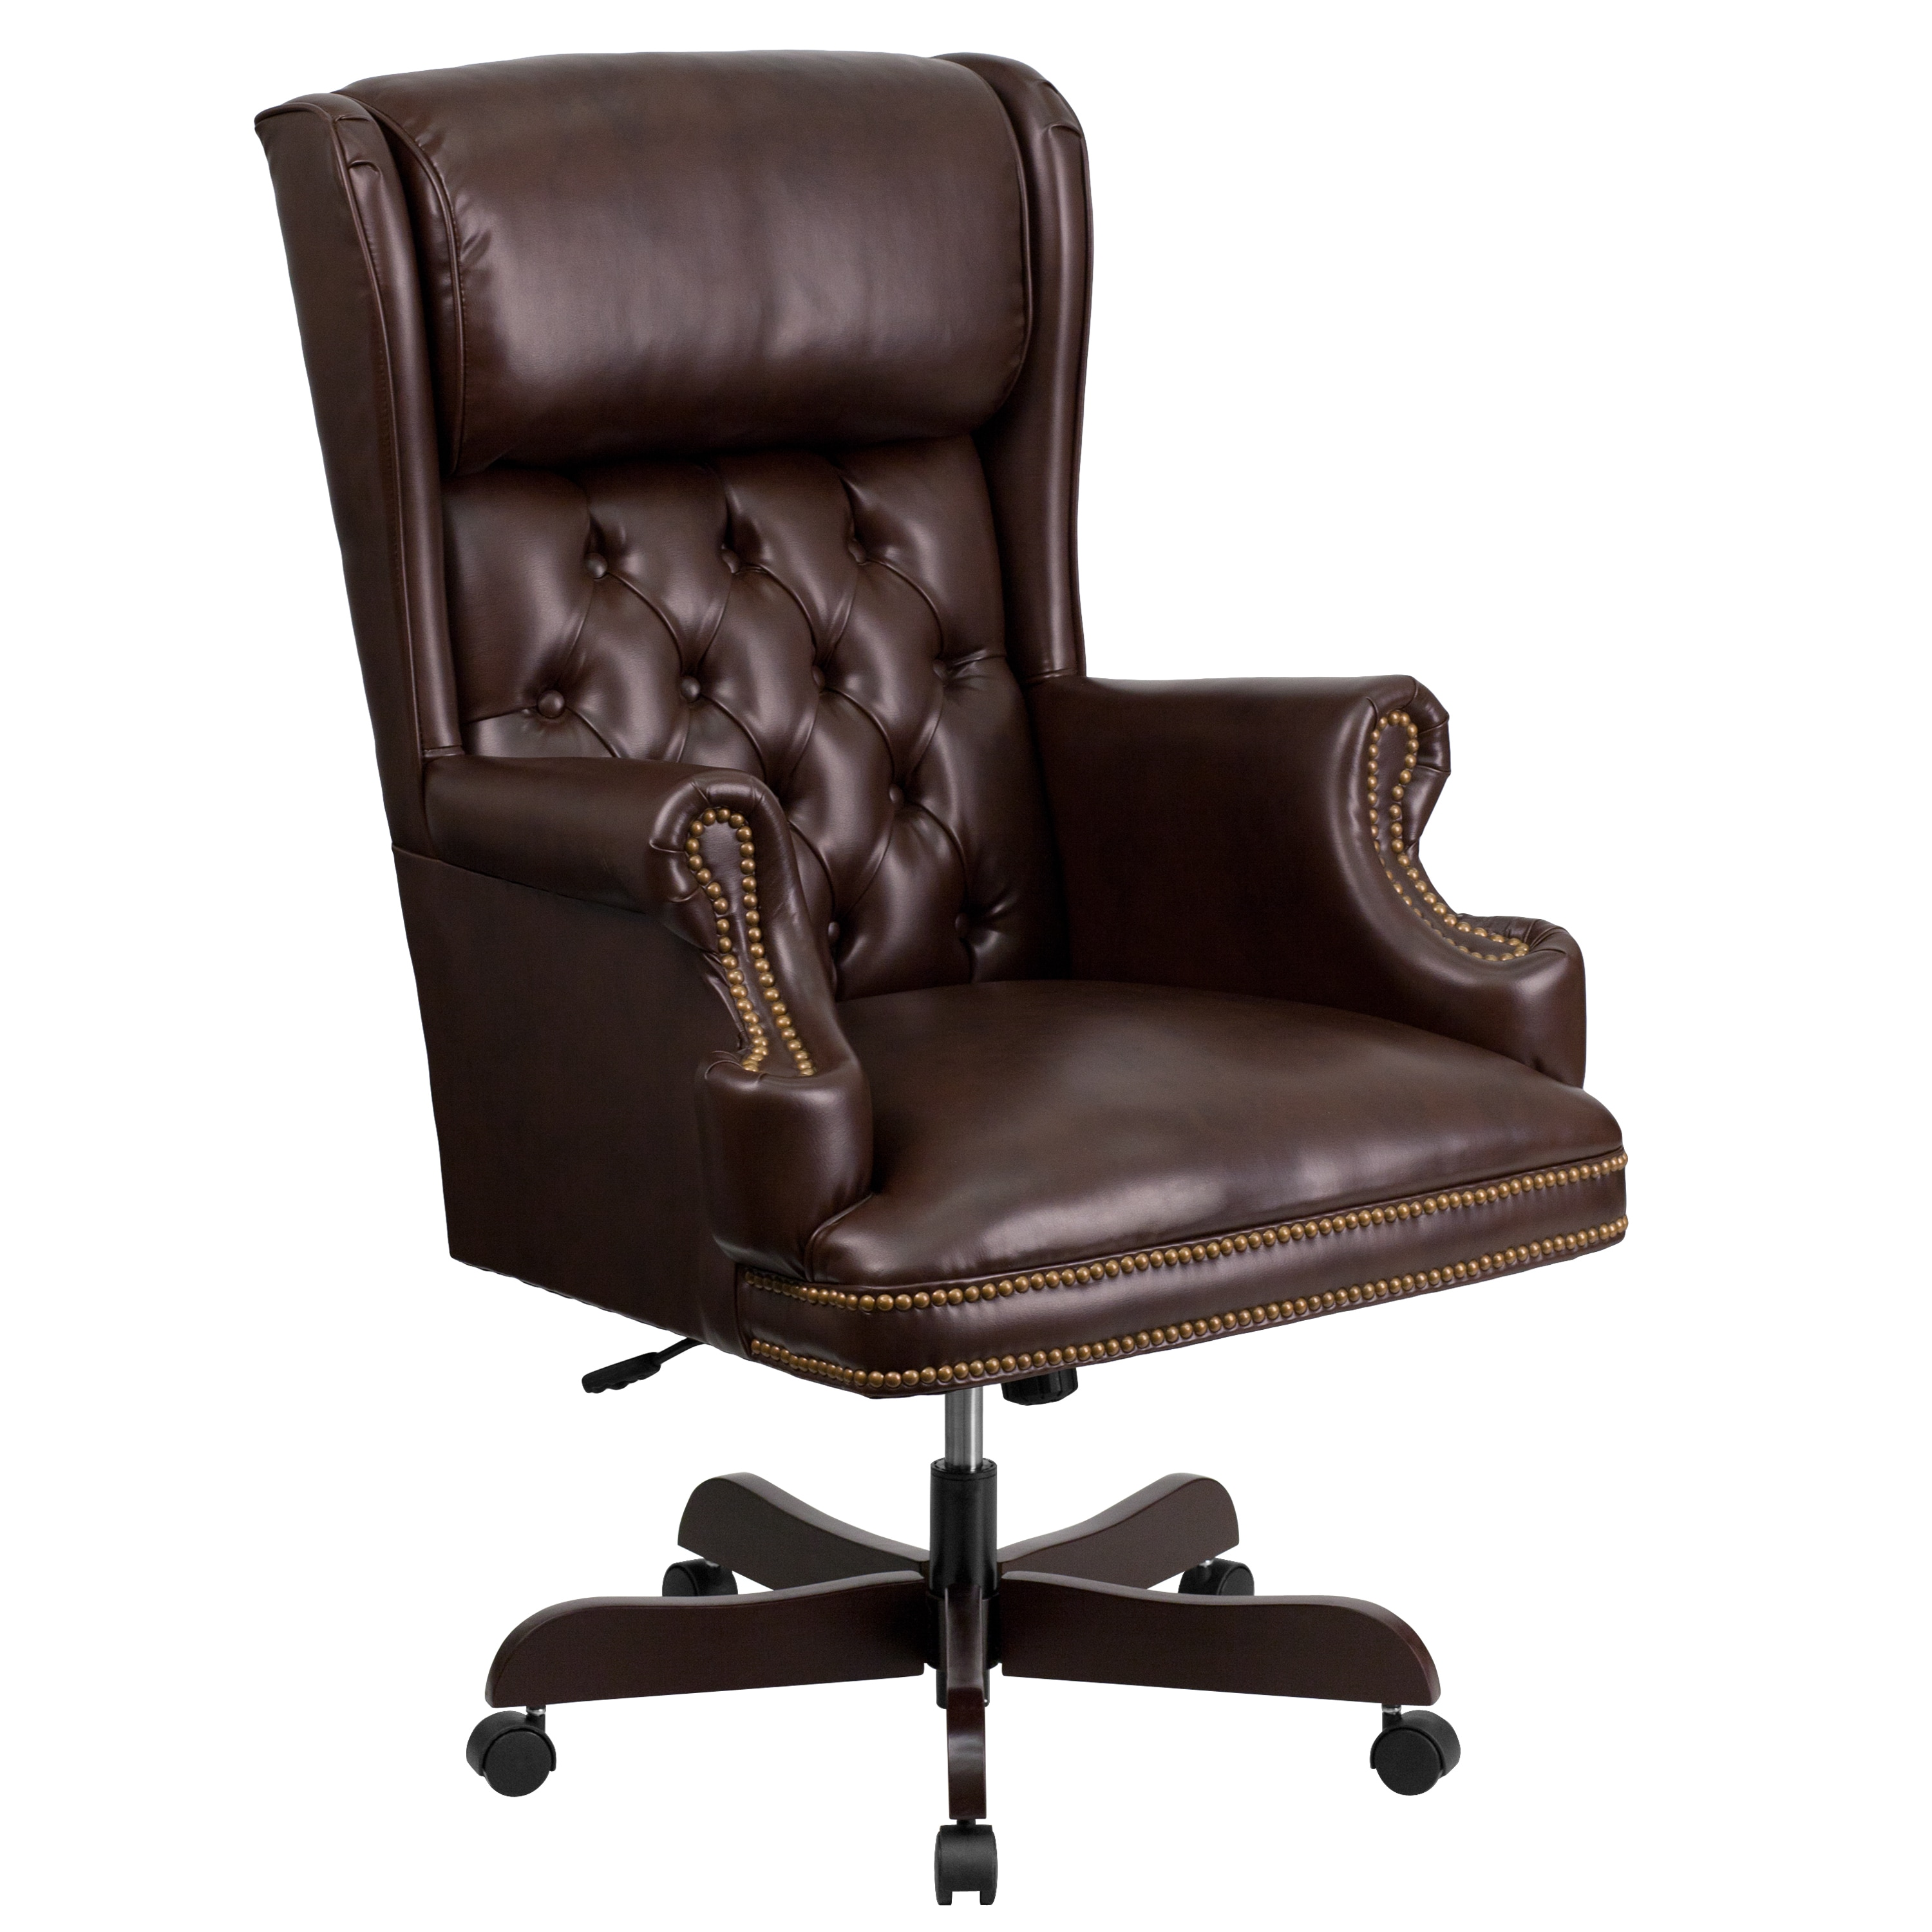 Wilmington Button Tufted Brown Leather Executive Adjustable Swivel Office Chair On Sale Overstock 13844365